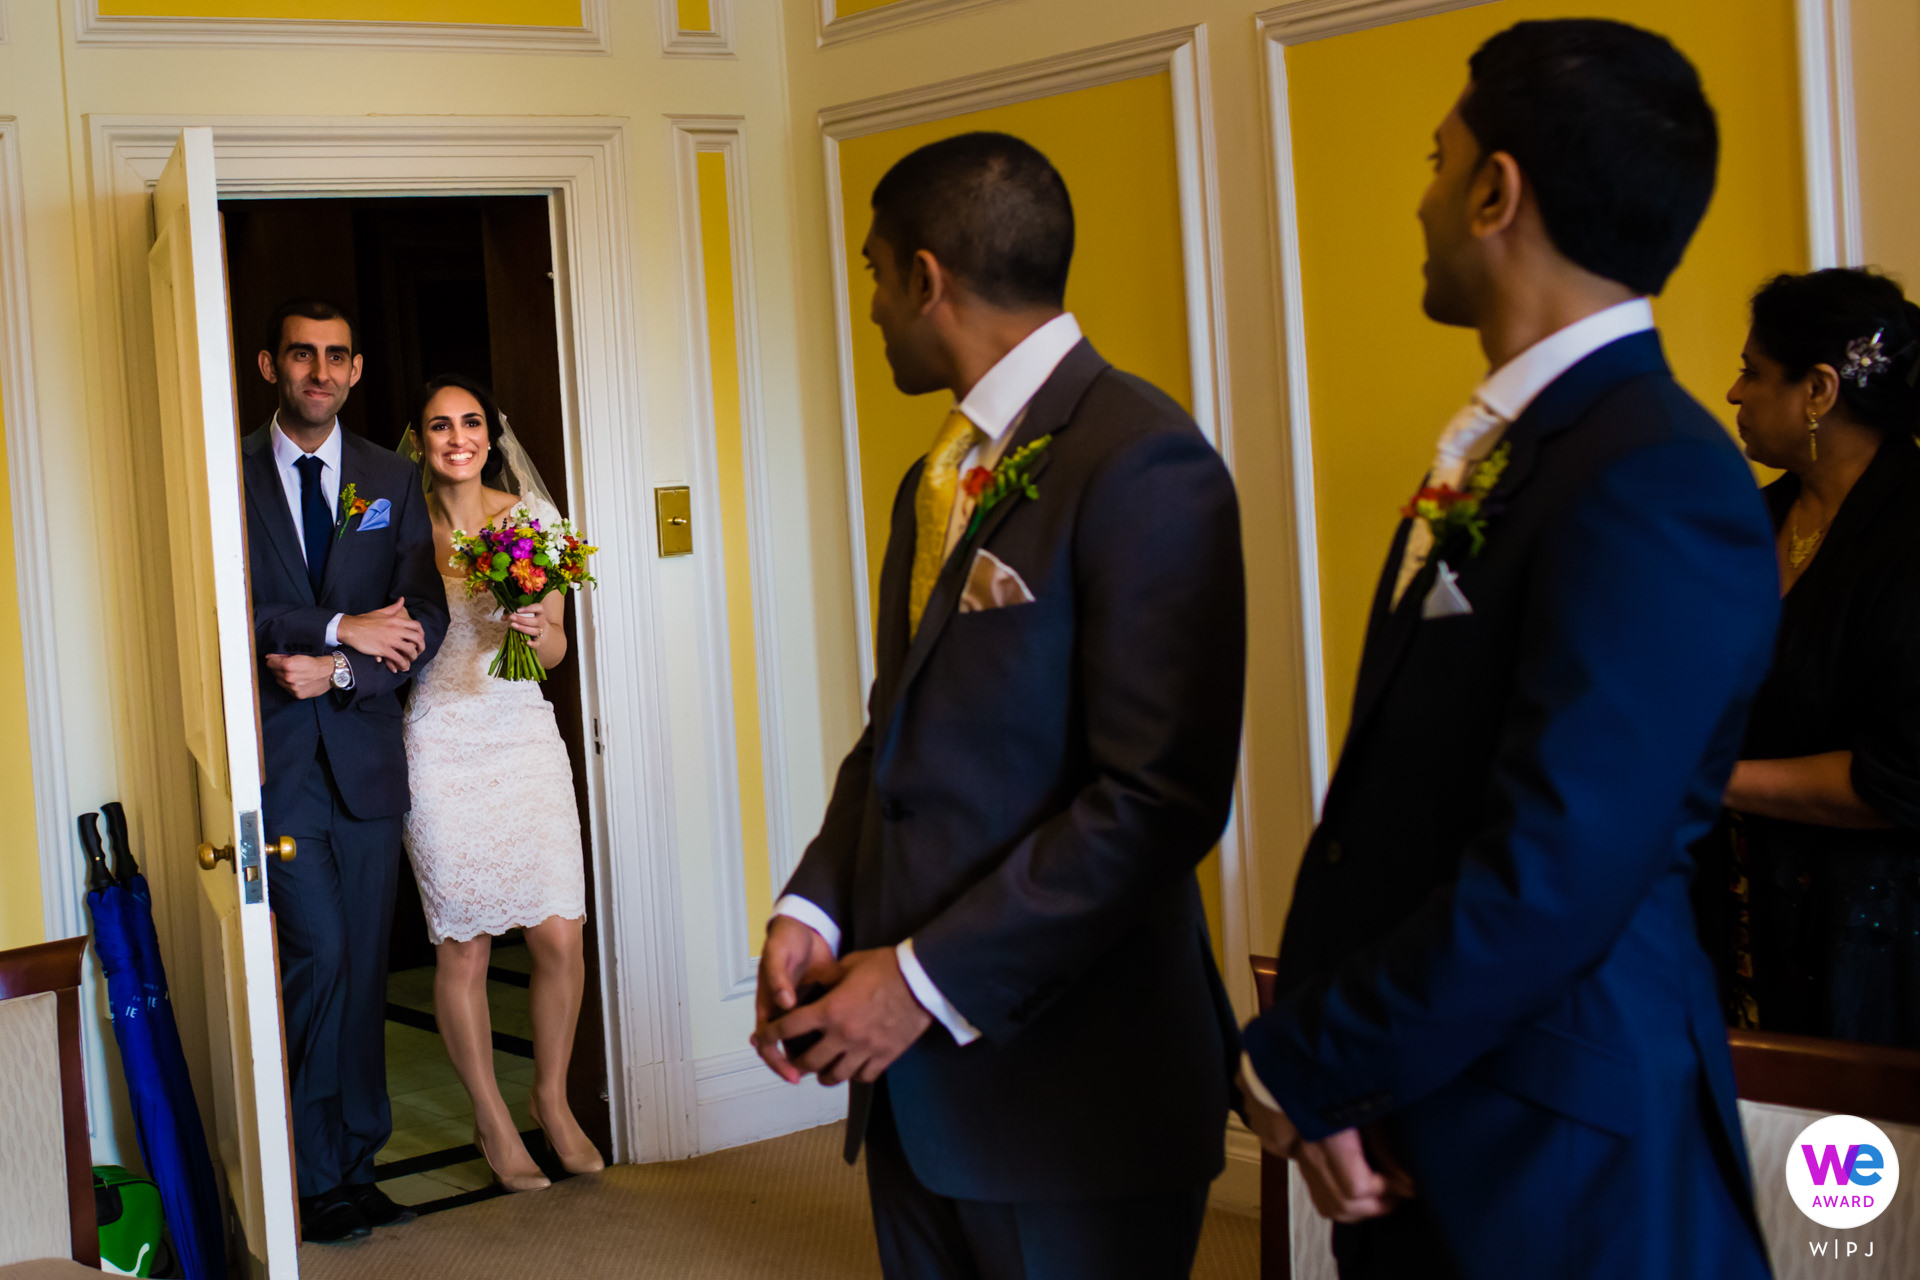 Westminster Town Hall in London Elopement Photo Story | the couple decided on an intimate ceremony in a fairly famous venue